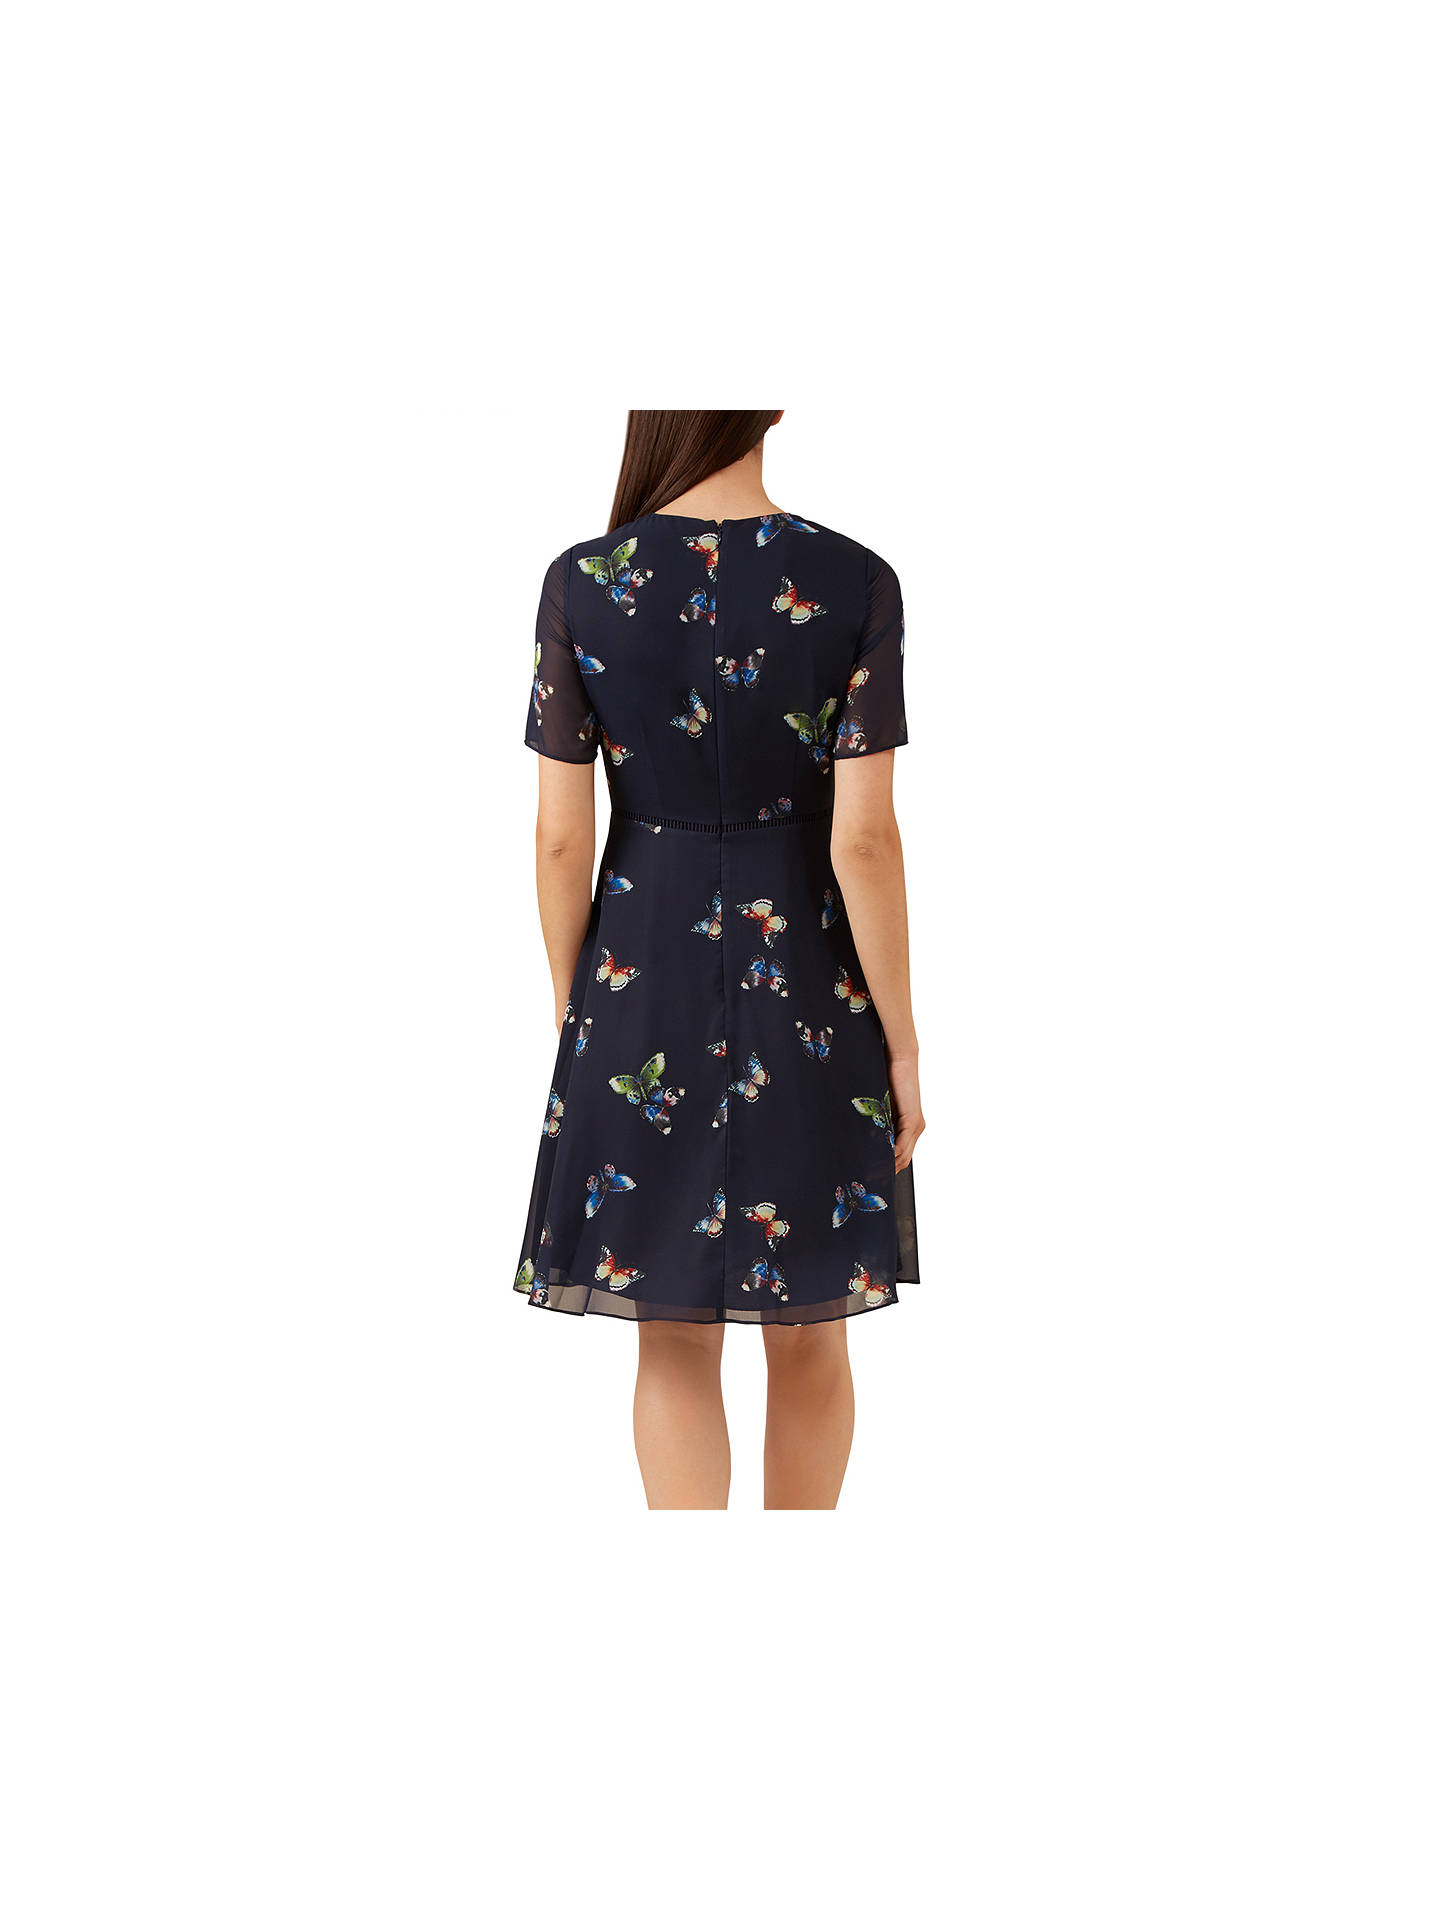 42cc5a1d5 ... Buy Hobbs Cecily Dress, Multi, 10 Online at johnlewis.com ...